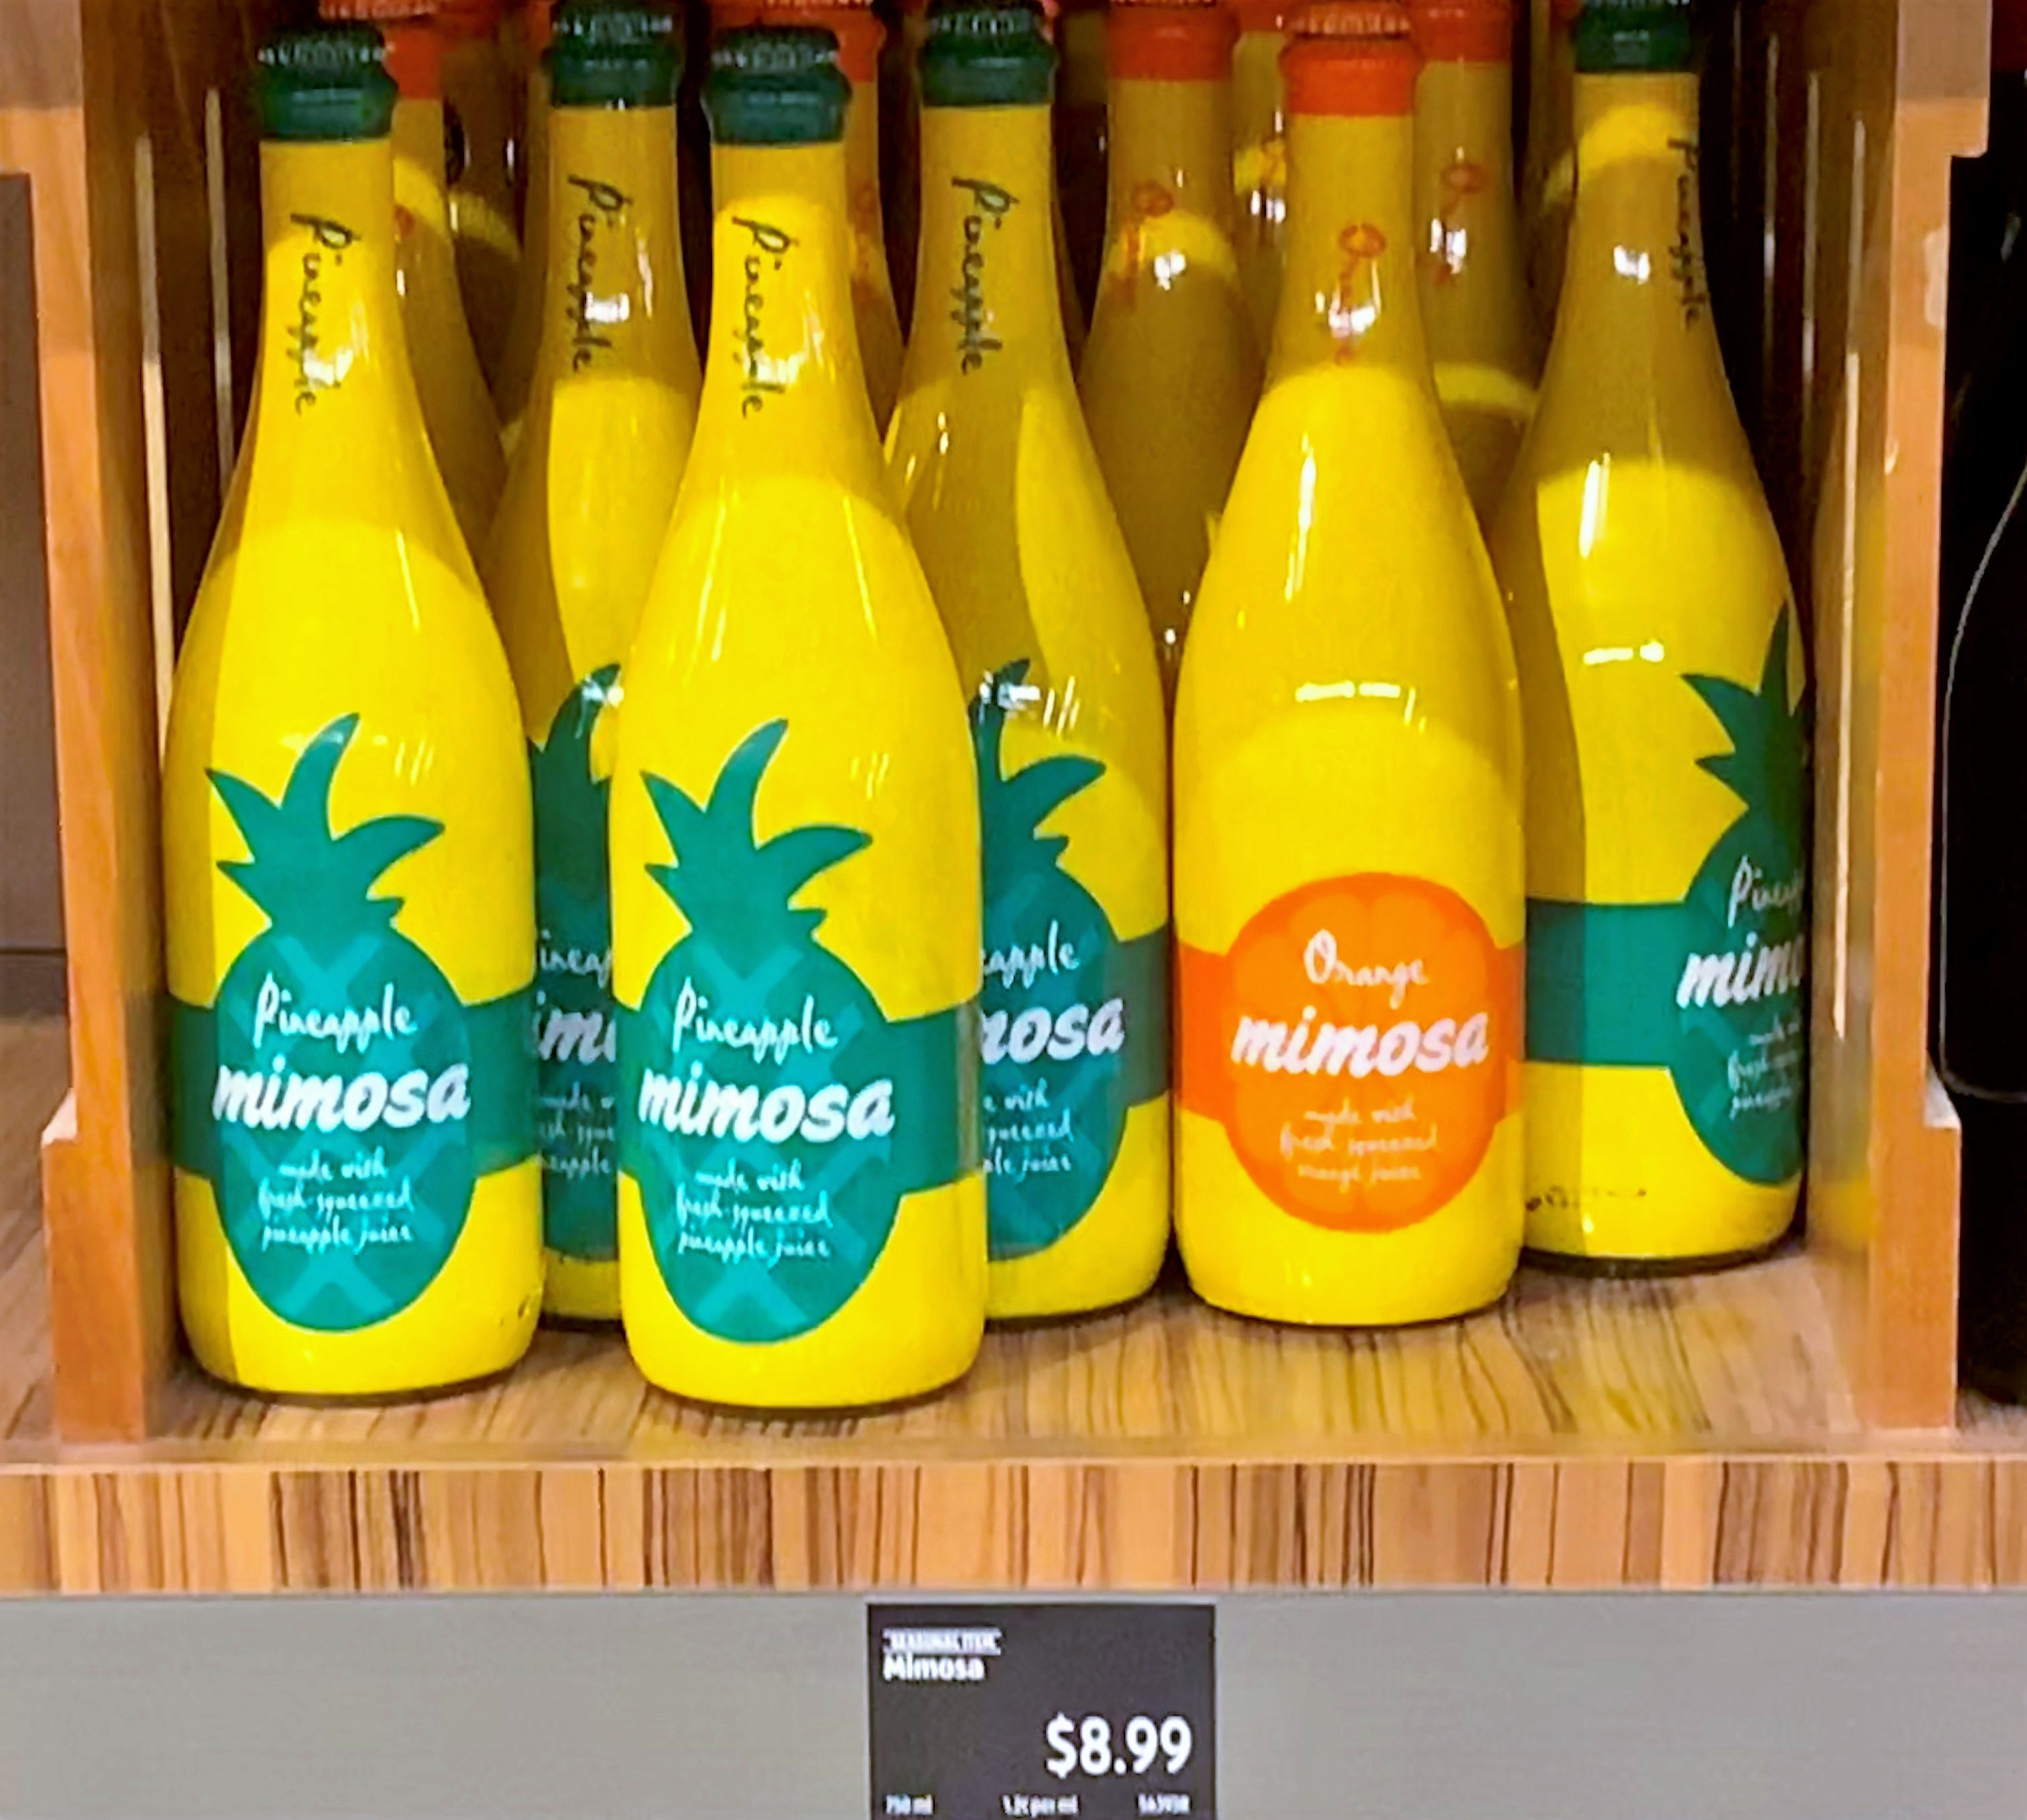 aldi pineapple mimosa retailer selling special bottled mimosas rh usatoday com